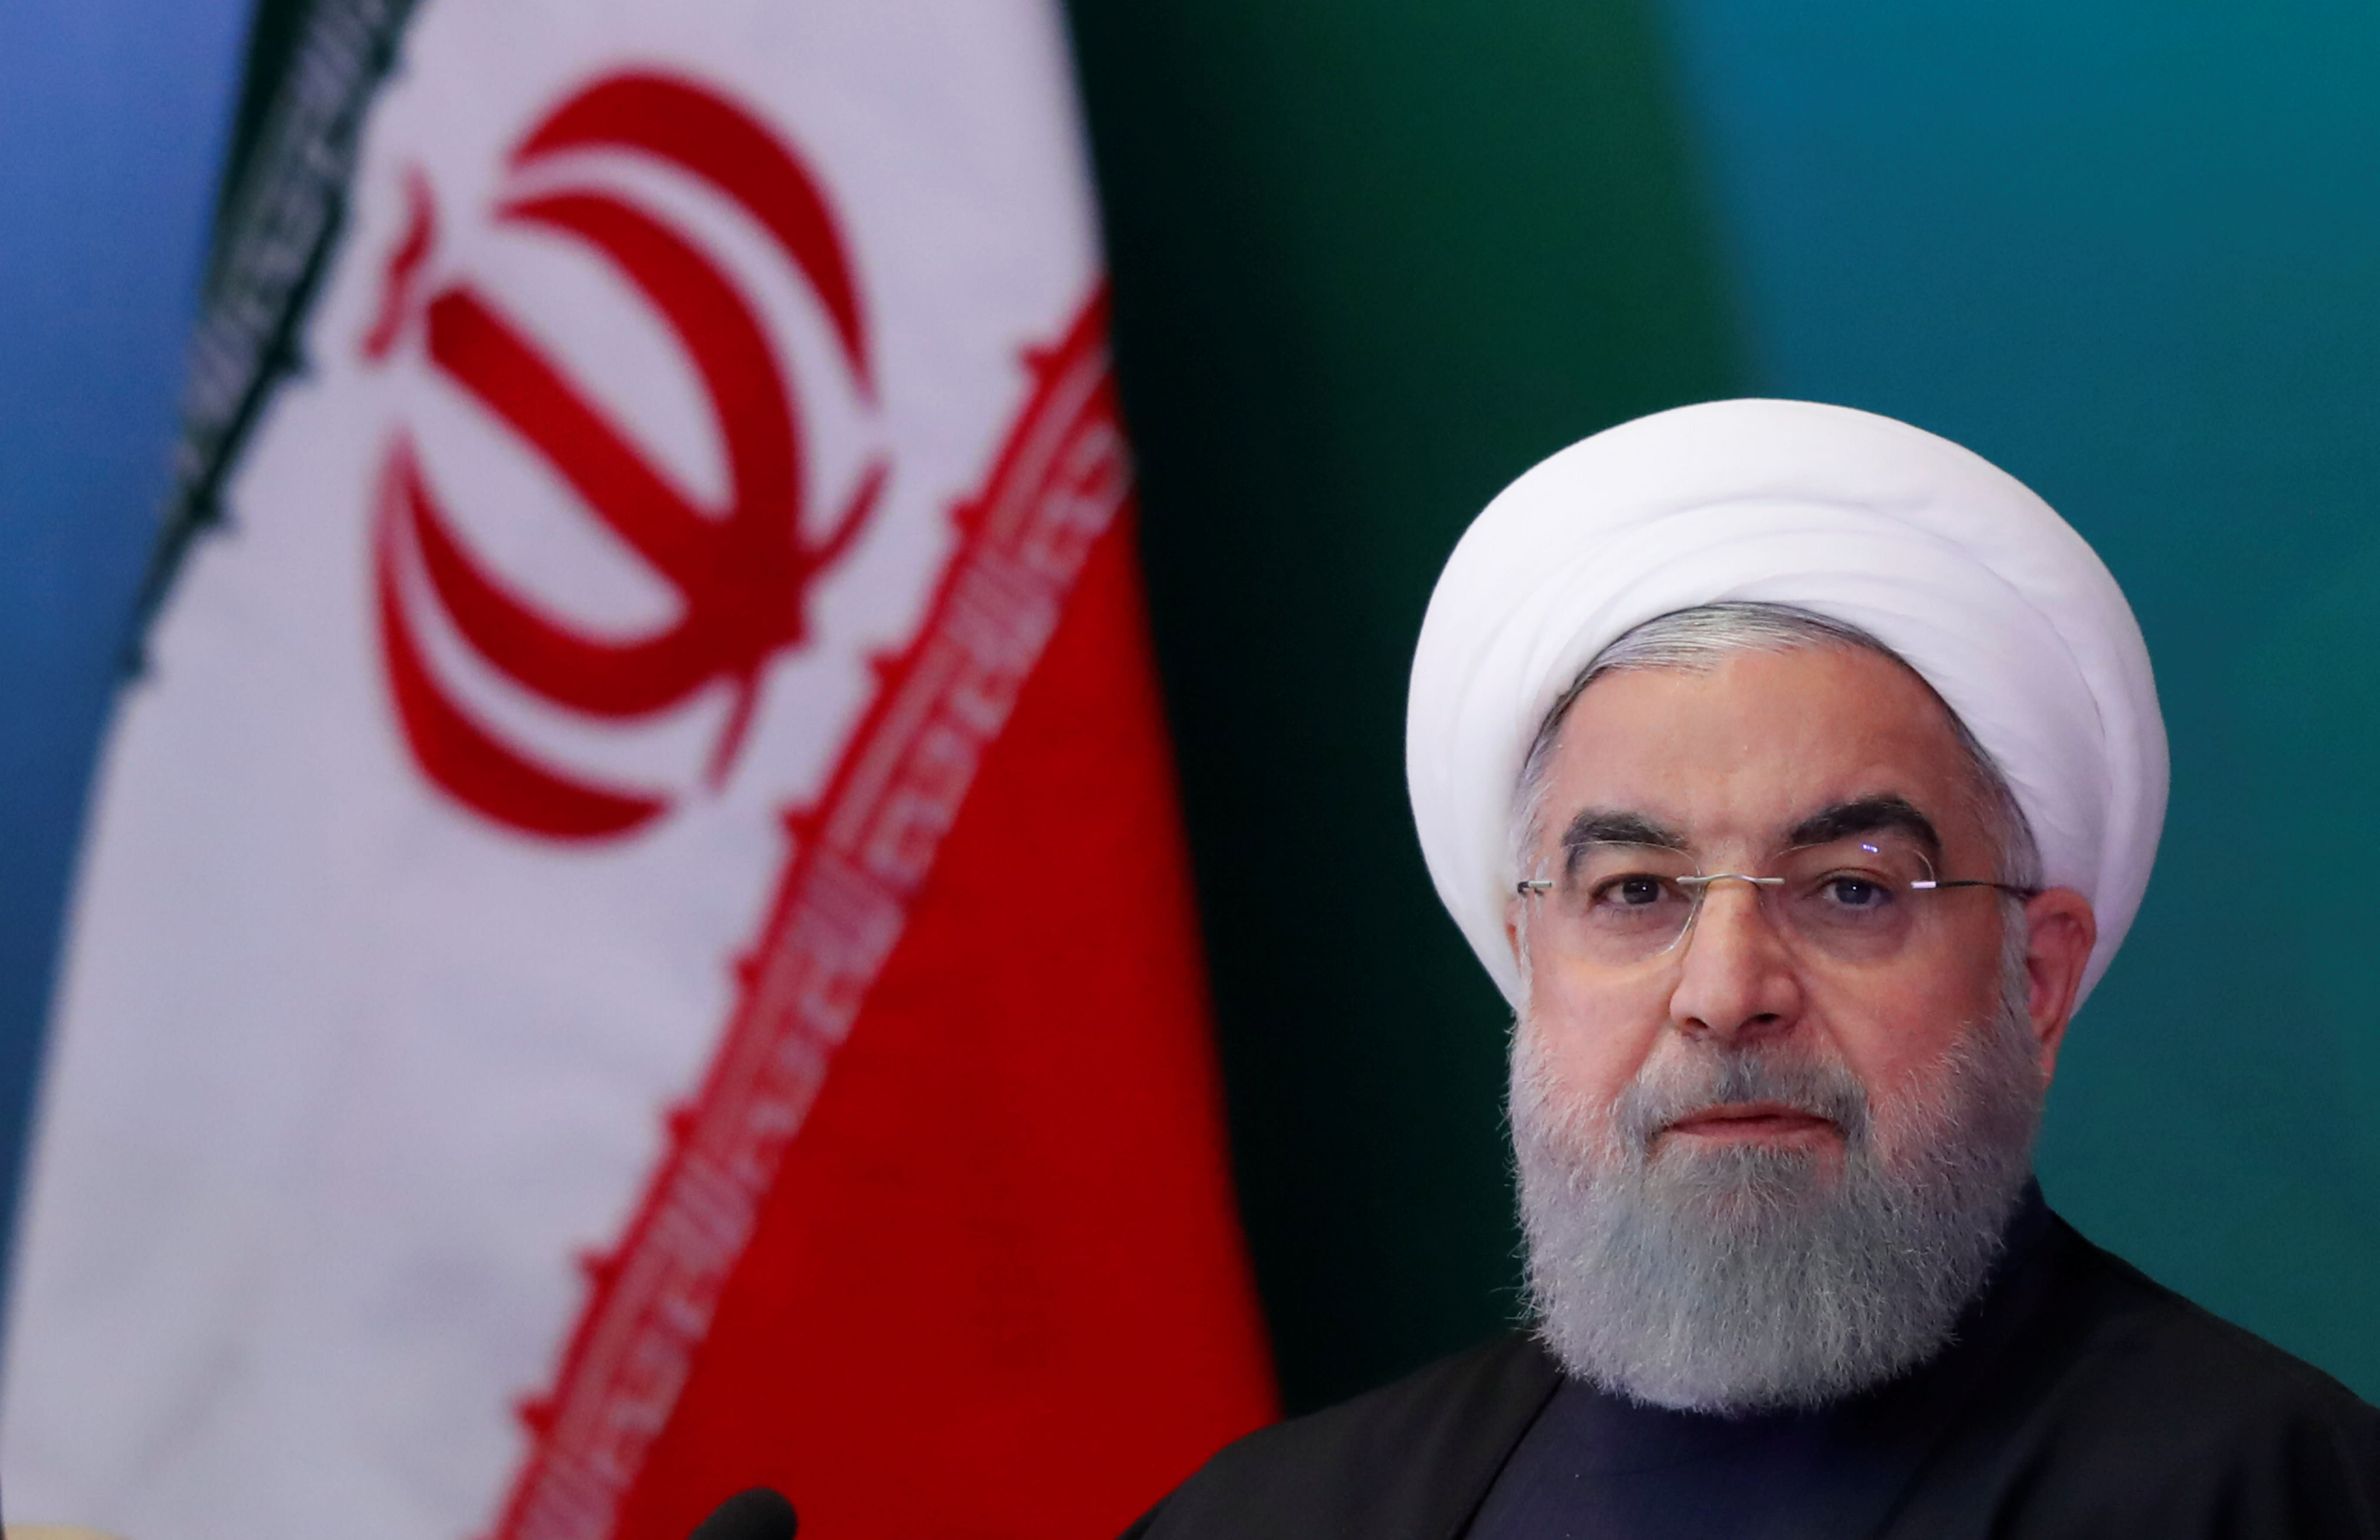 Iranian President Hassan Rouhani attends a meeting with Muslim leaders and scholars in Hyderabad, India, February 15, 2018. (Reuters)